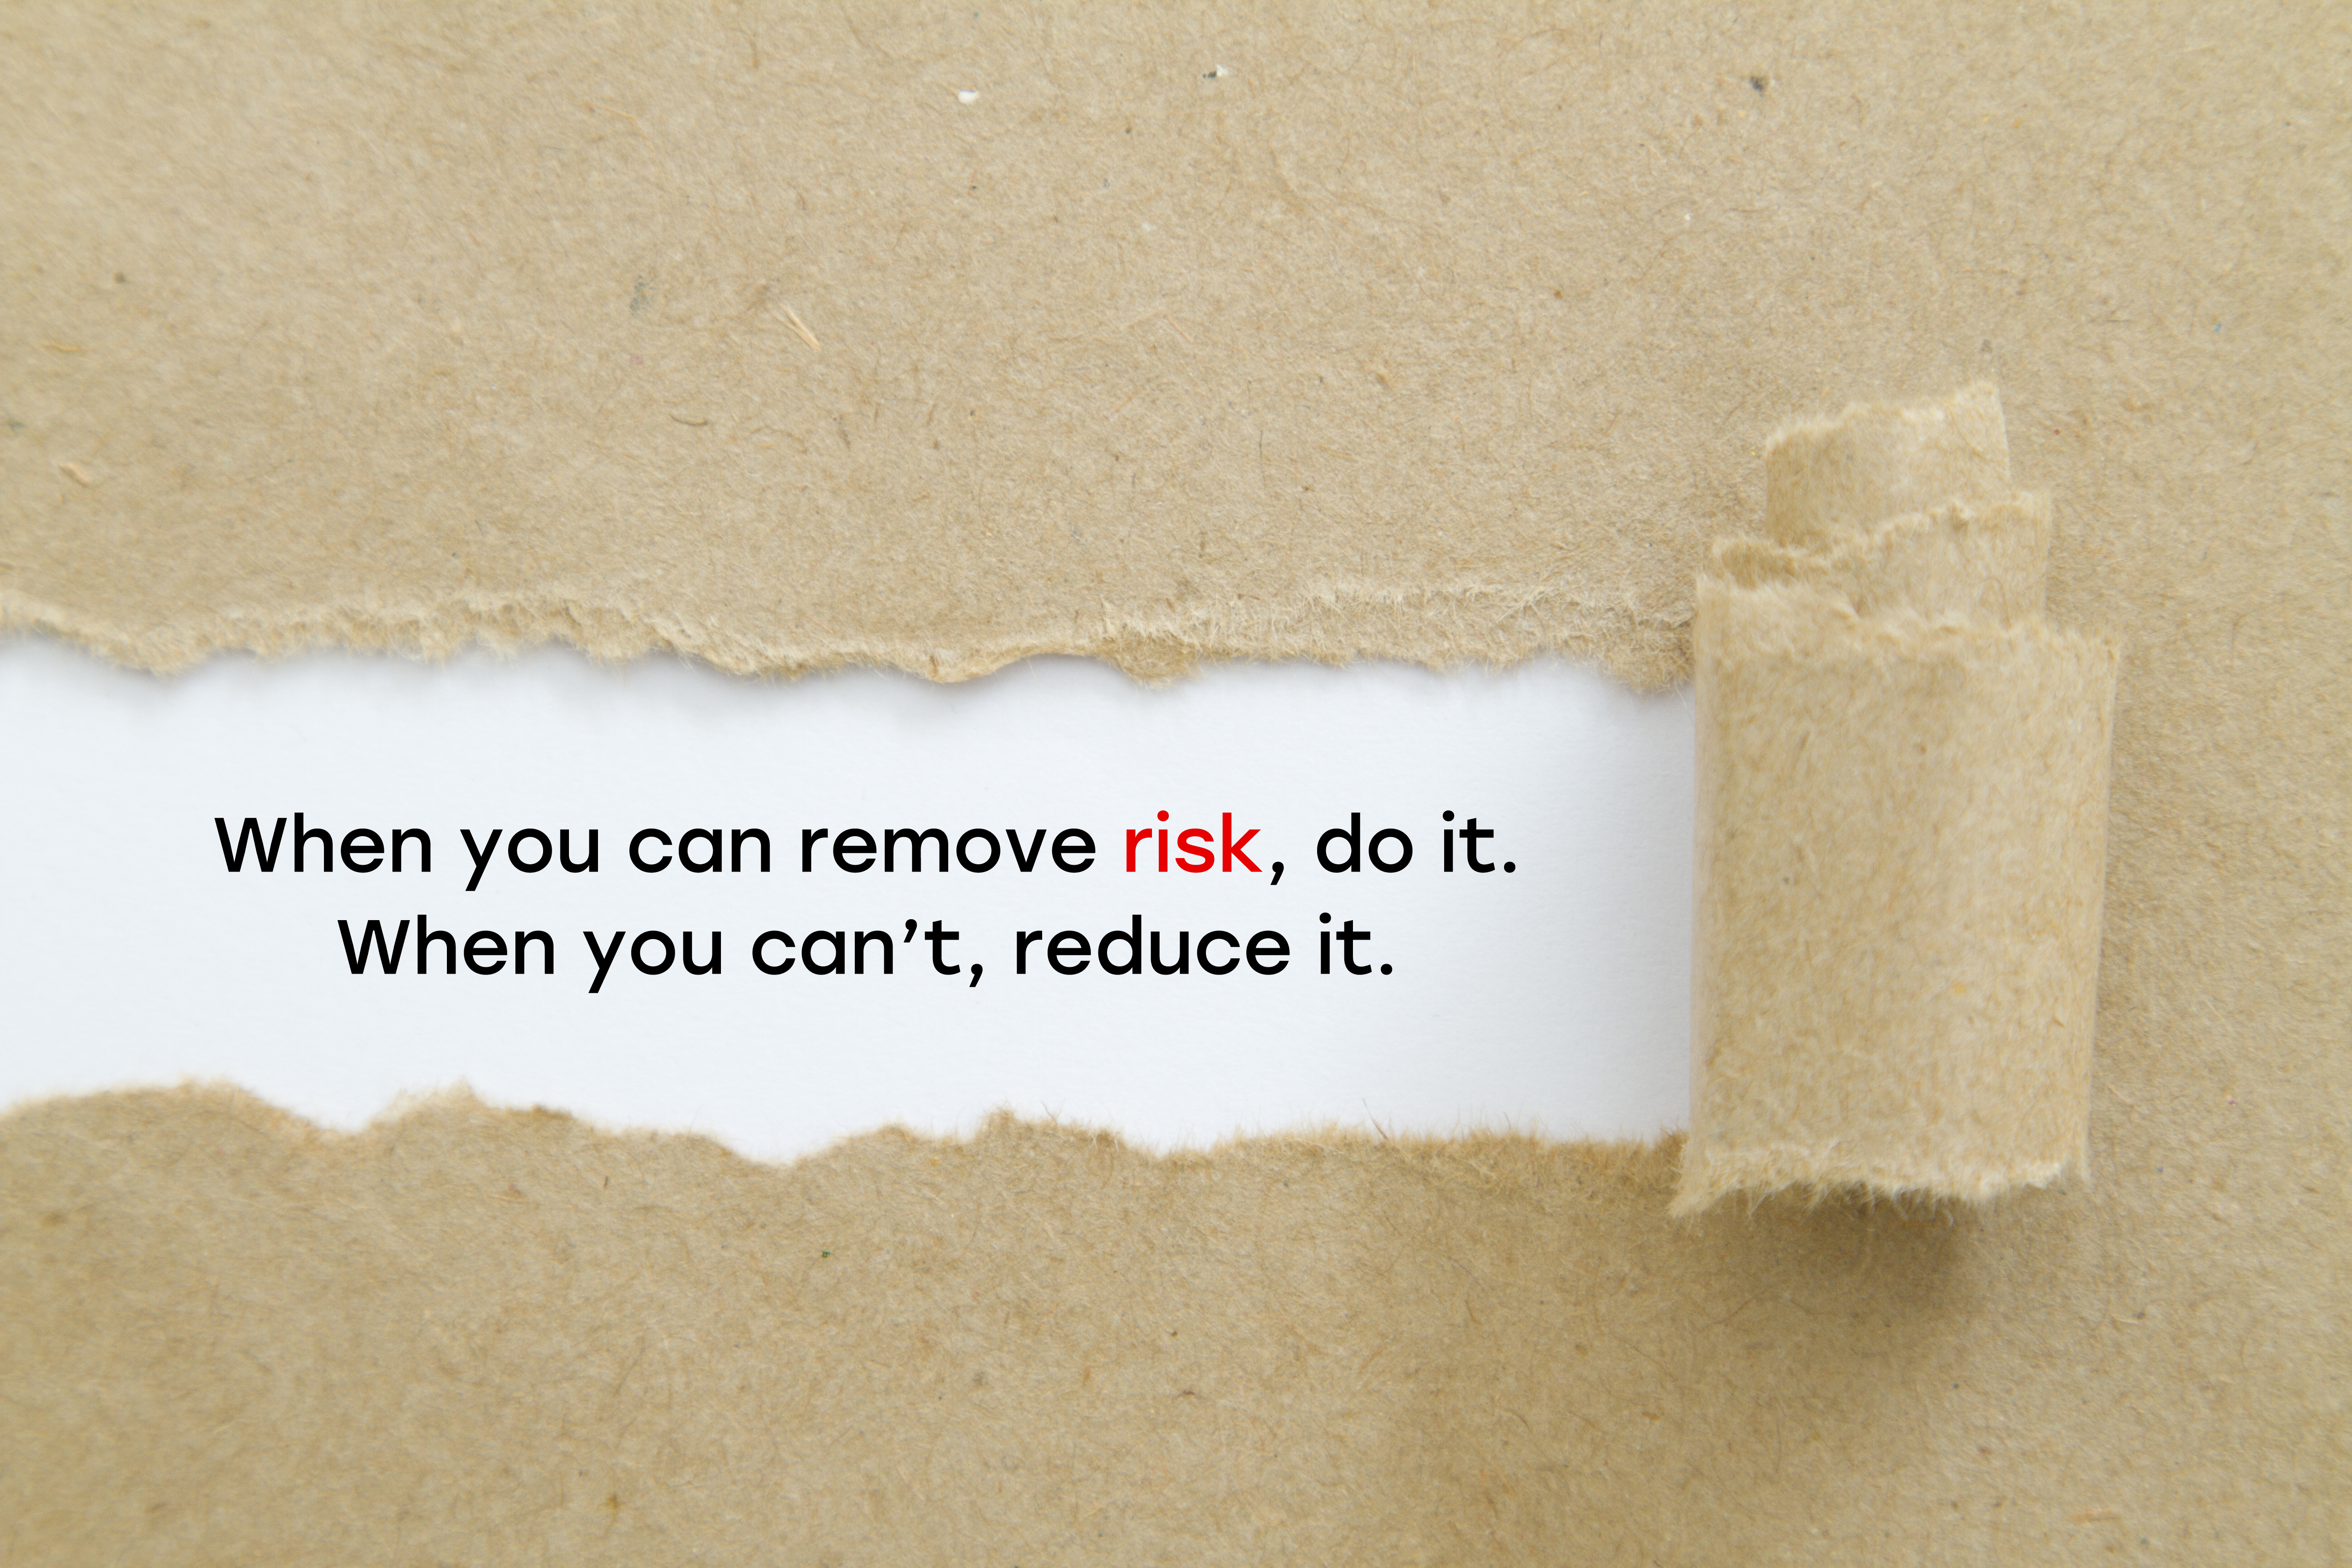 """""""When you can remove risk, do it. When you can't, reduce it. """" slogan written under torn paper. Risk management concept."""